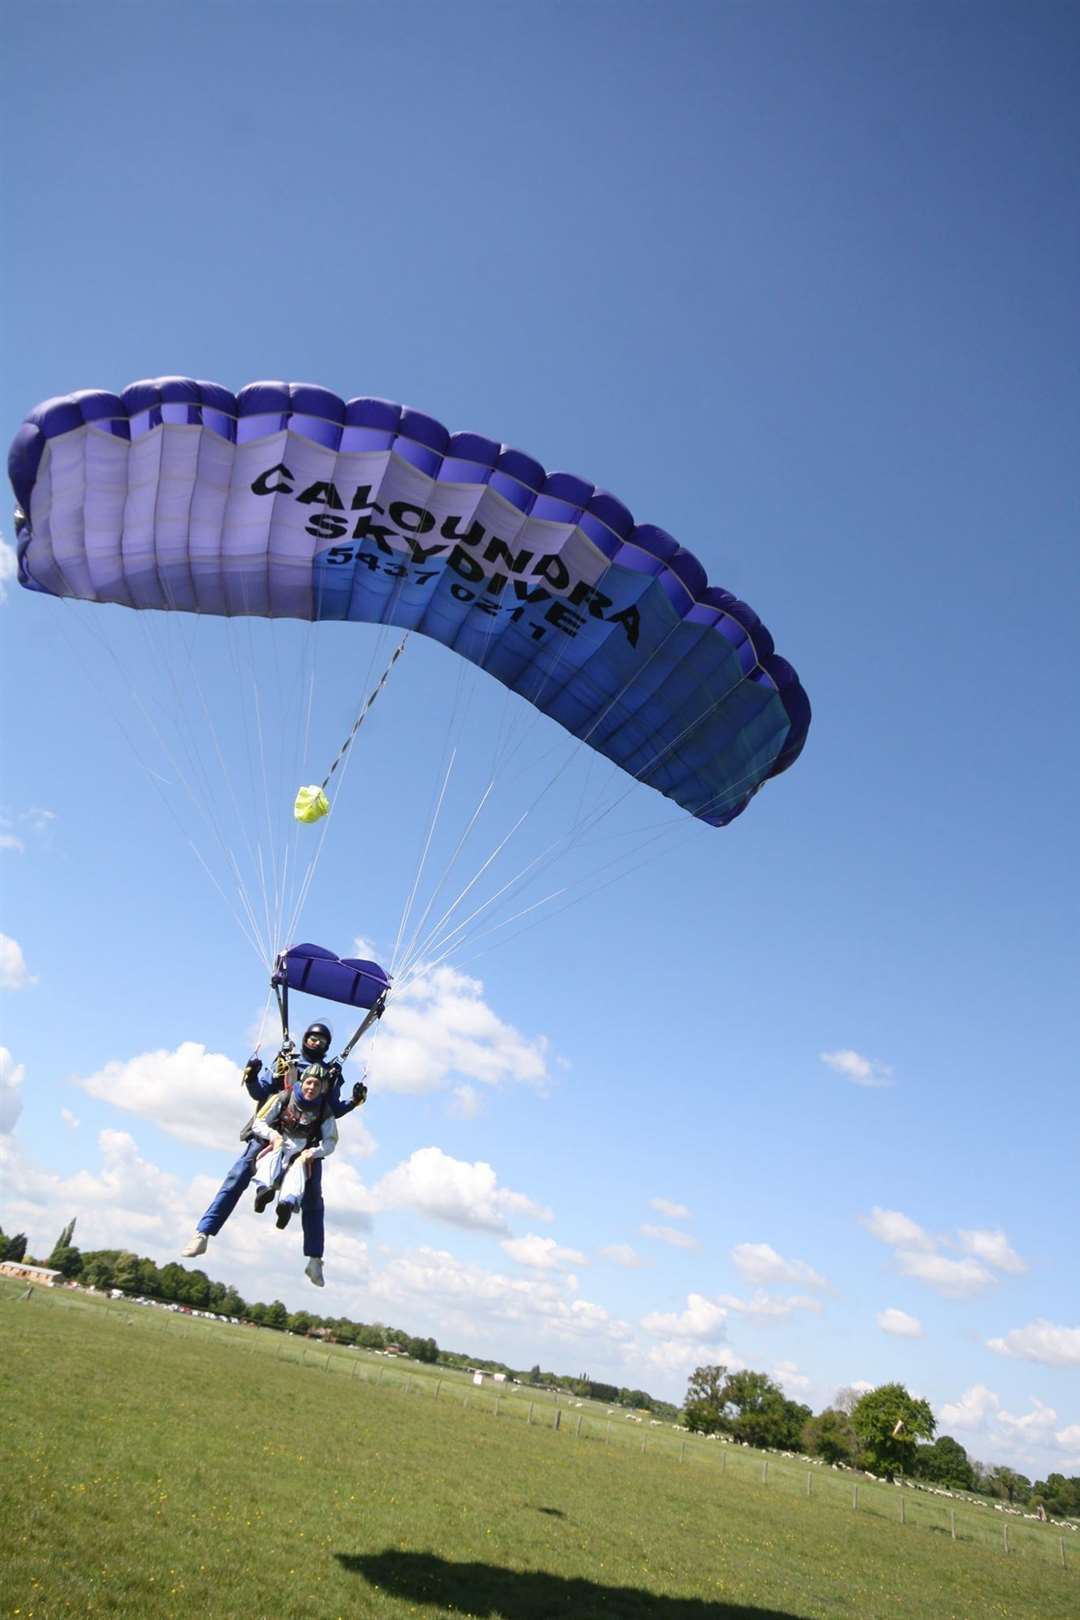 Sian Williams, 35, skydived to raise money for ellenor (10216437)